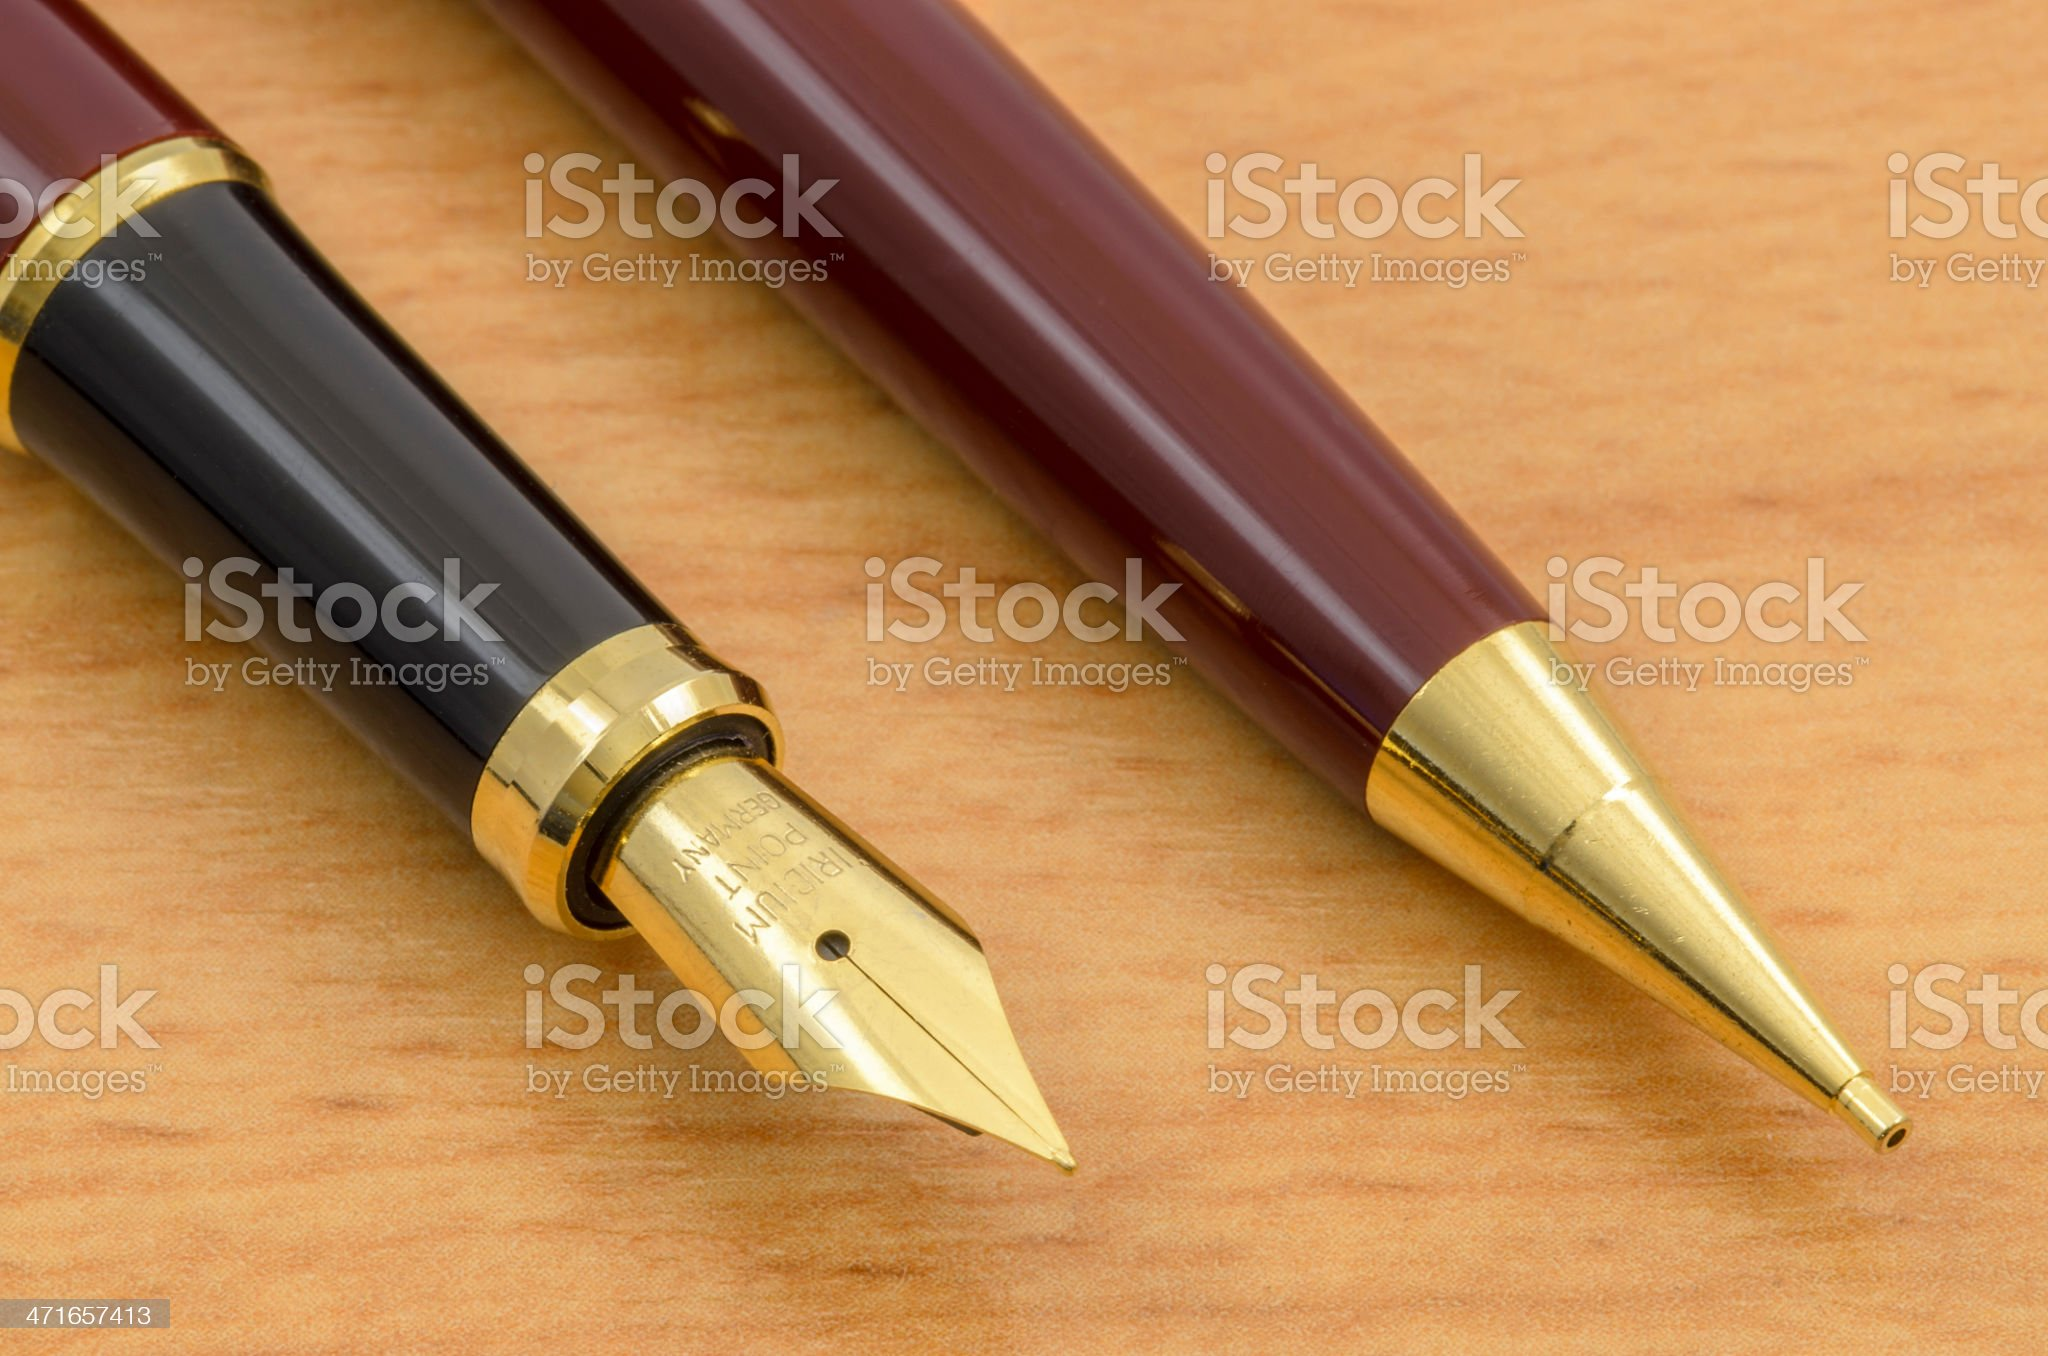 Fountain Pen and Pencil Set 05 royalty-free stock photo